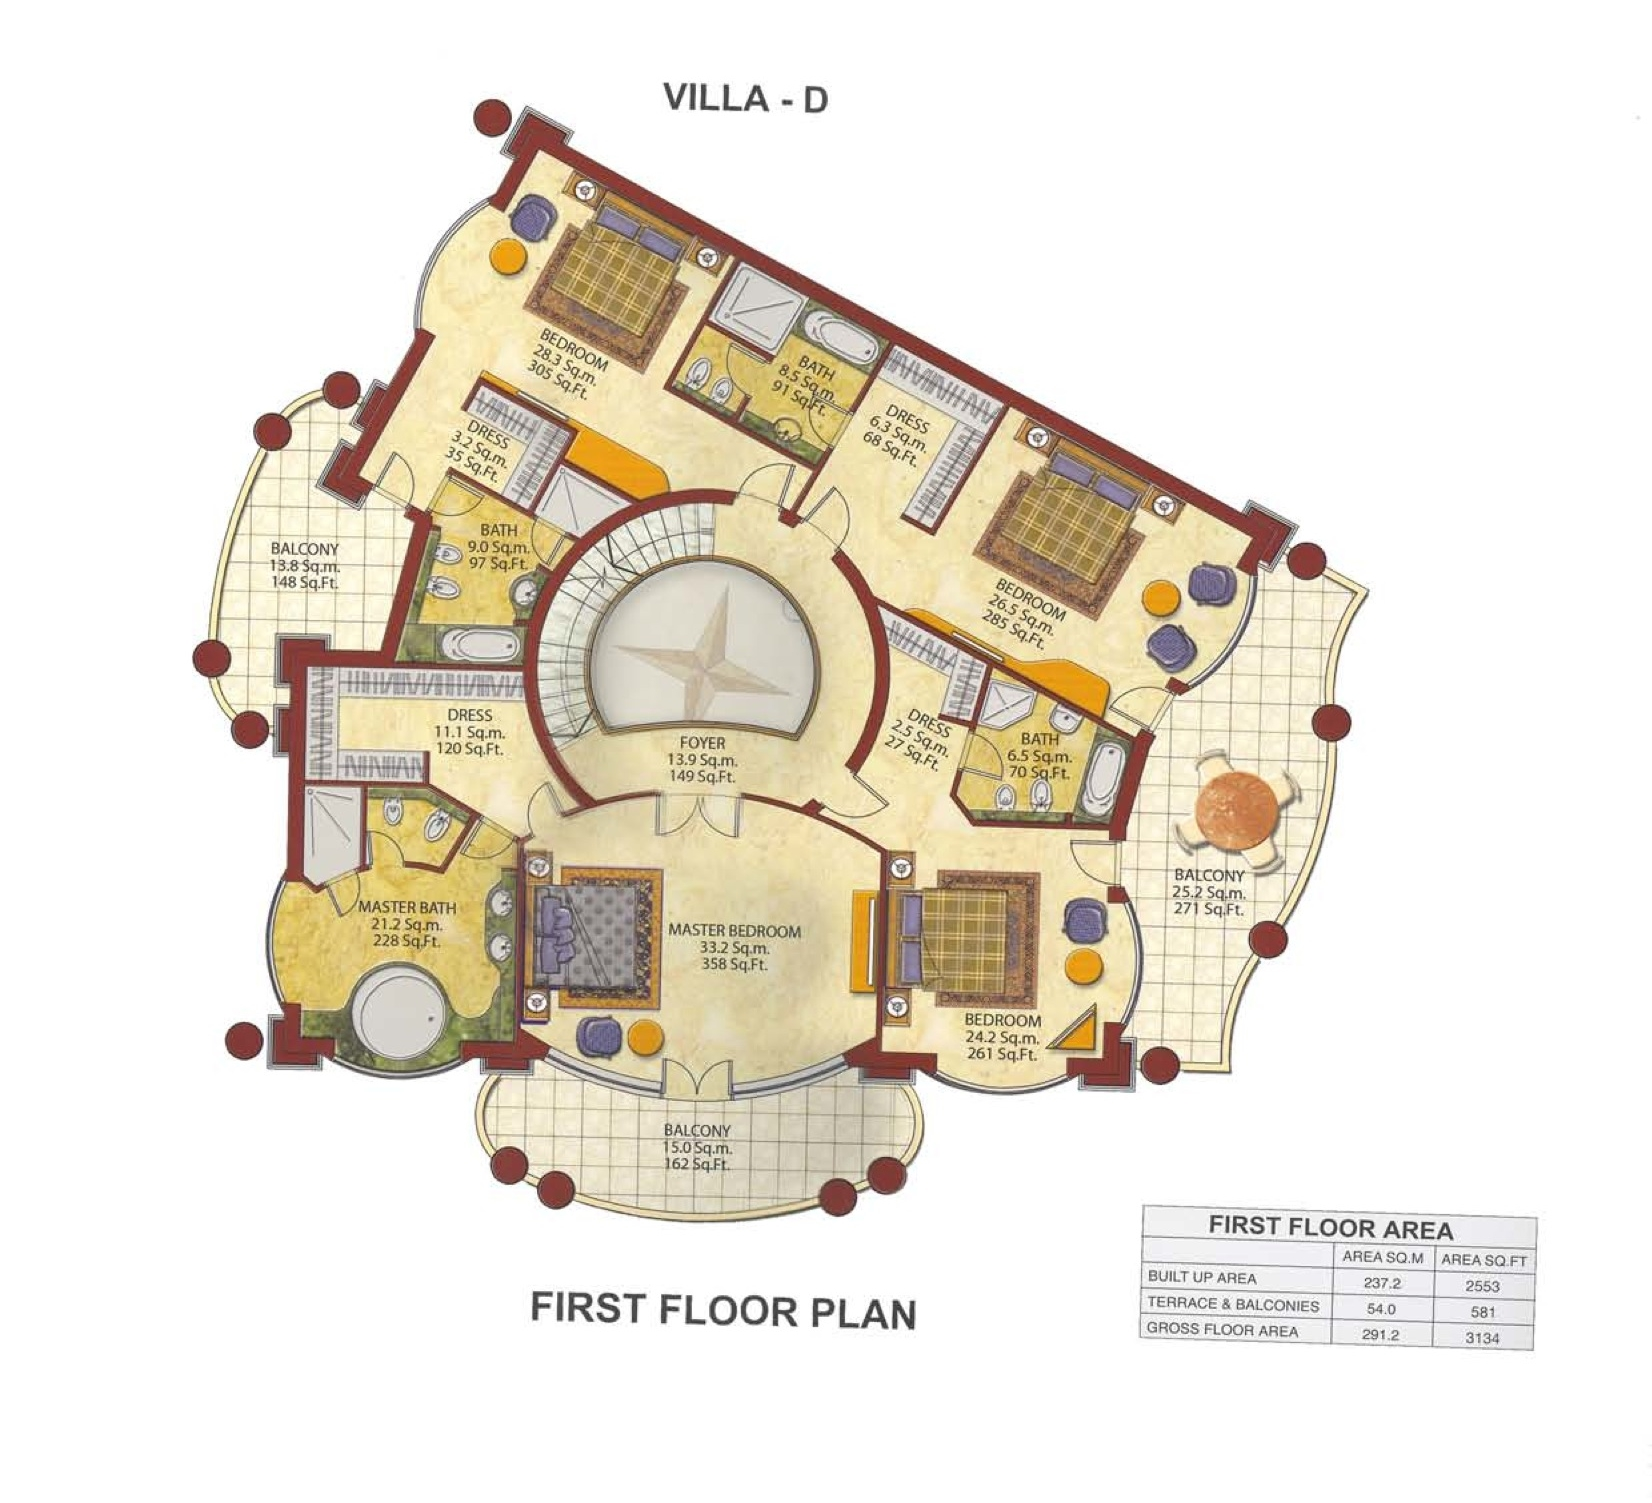 House Plan By Floorplan besides The University Of Adelaide Village as well Watch likewise 2 Bedroom Bungalow Floor Plan furthermore House Plan By Floorplan. on townhouse floor plans